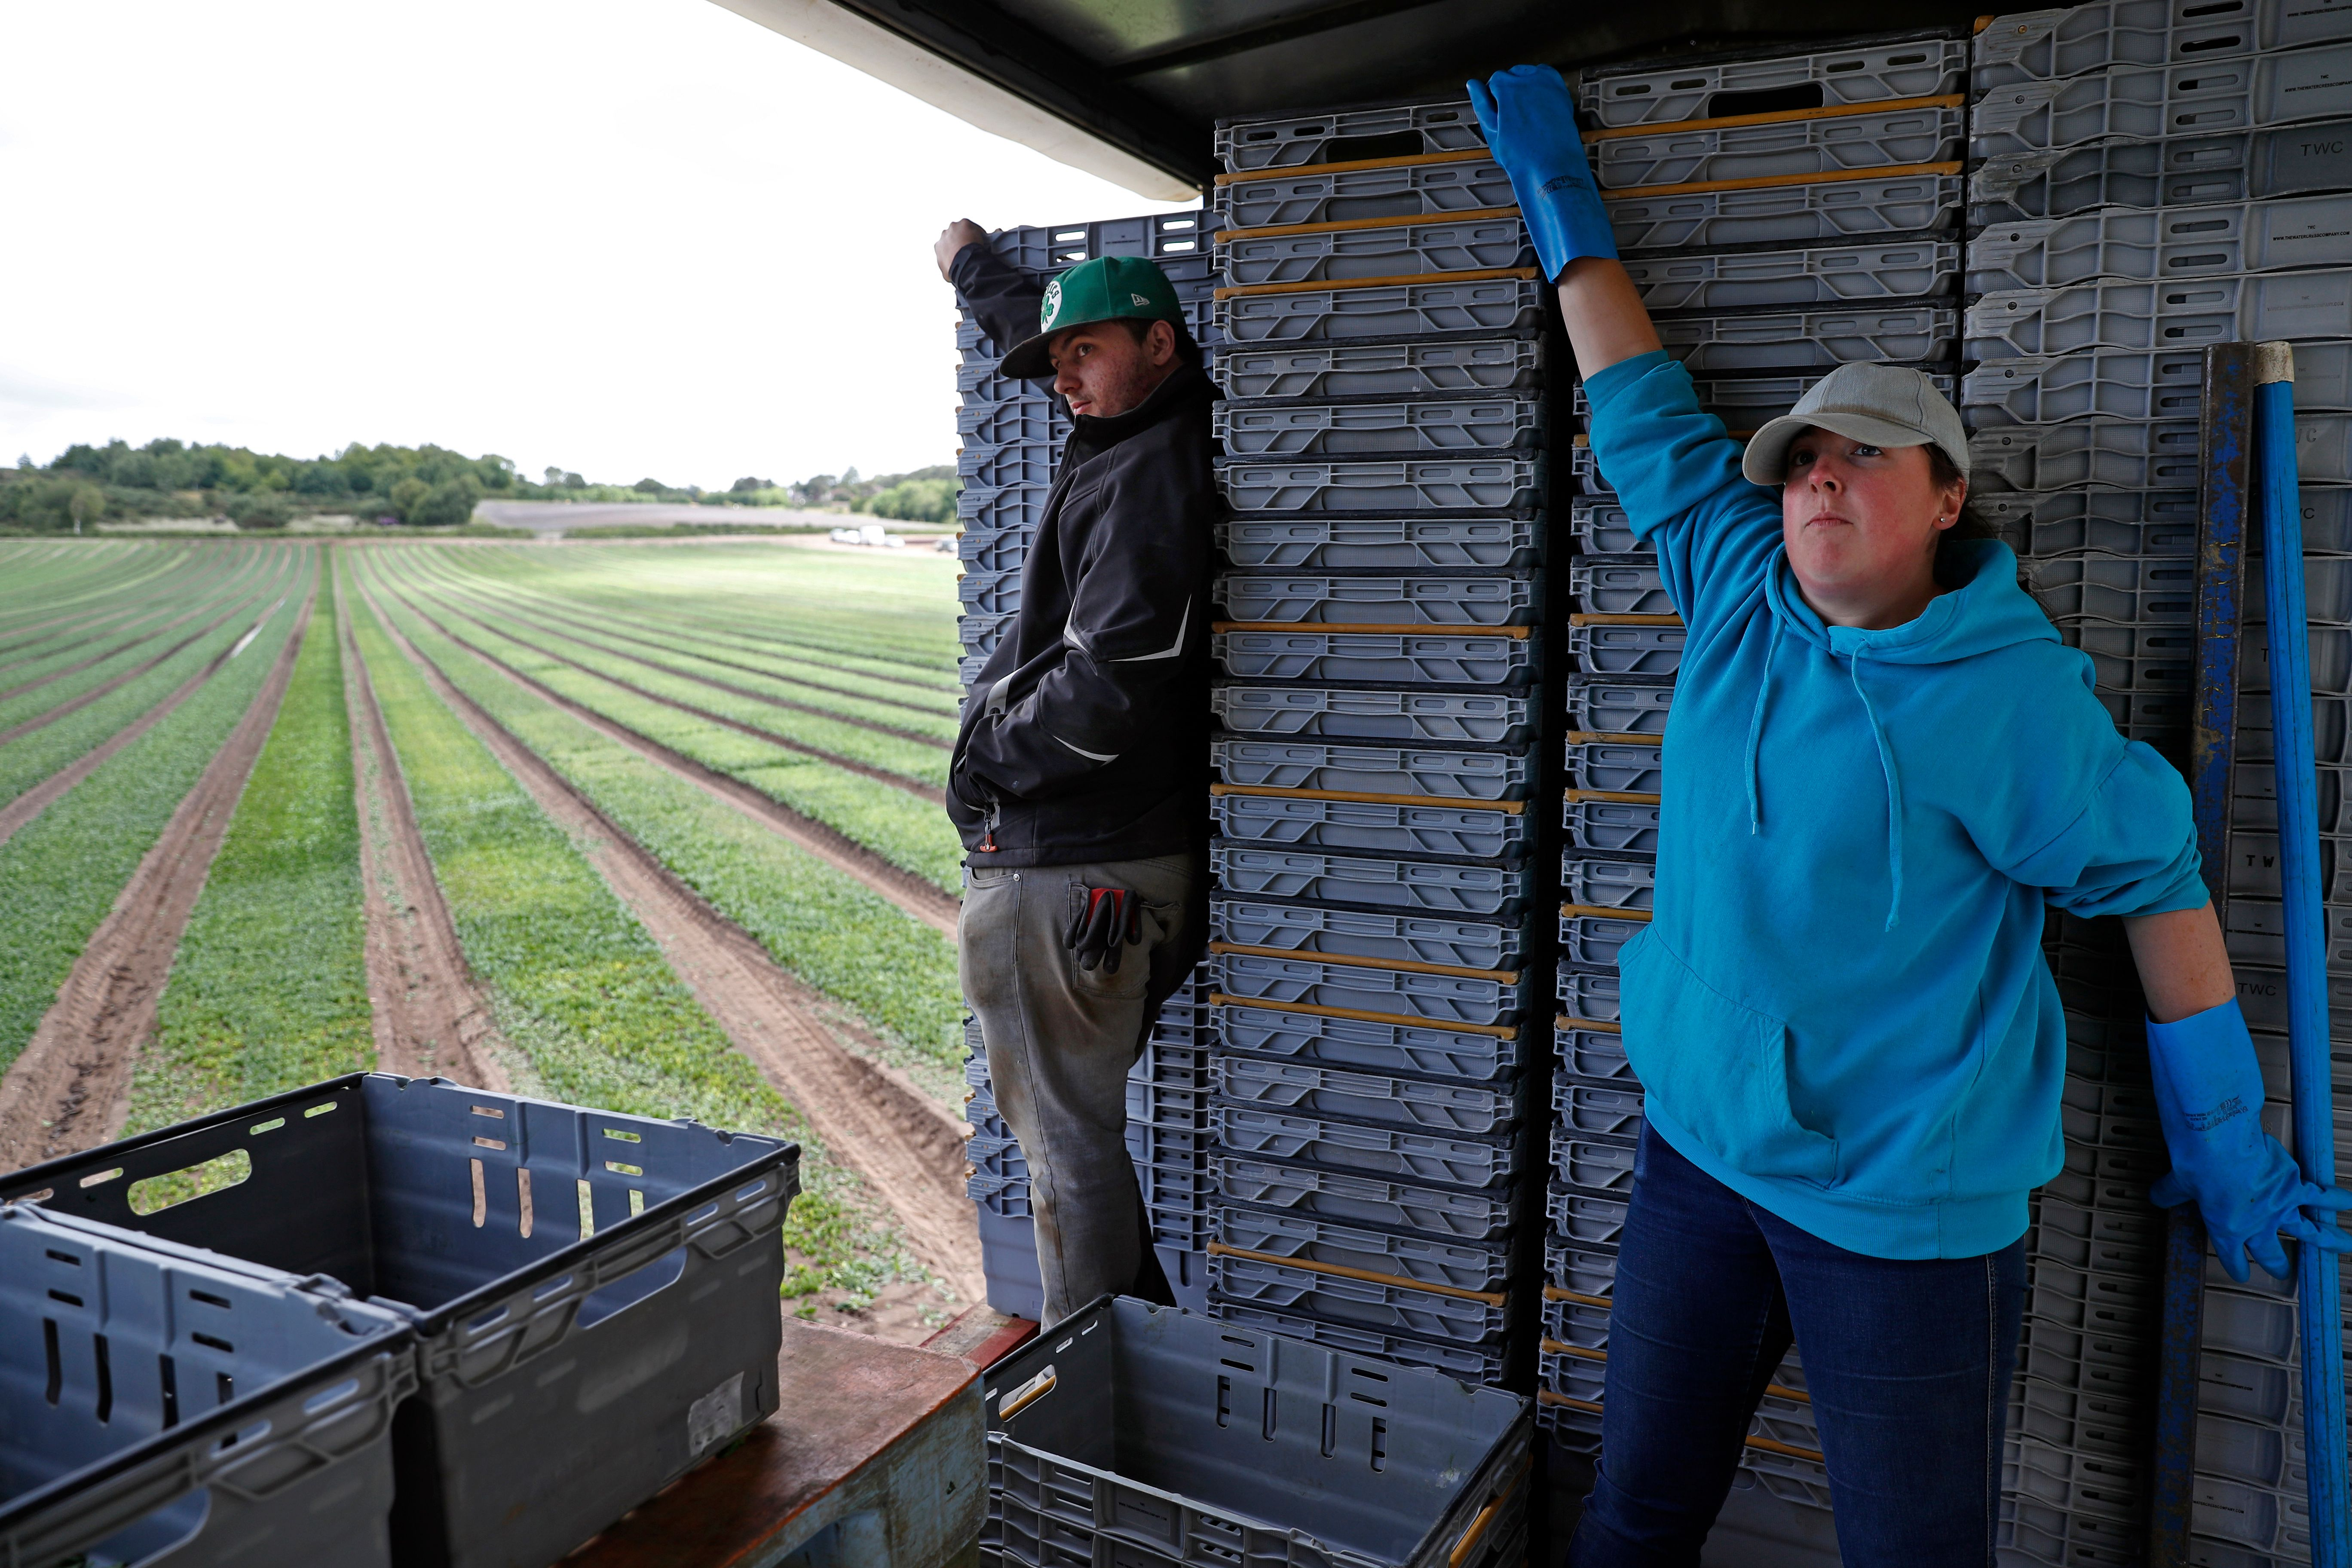 Terri Eaton (R) and Dan Racvenhill (L), part of the UK Seasonal Relief Team working for The Watercress Company hold onto crates full of spinach as the tractor manoeuvres across the field as they harvest spinach on farmland near Dorchester, in southern England on June 5, 2020, during the novel coronavirus COVID-19 pandemic. - The company have found it difficult to find staff since the Coronavirus pandemic, due to a shortage of seasonal workers from abroad, managing director Tom Amery said. (Photo by ADRIAN DENNIS / AFP) (Photo by ADRIAN DENNIS/AFP via Getty Images)